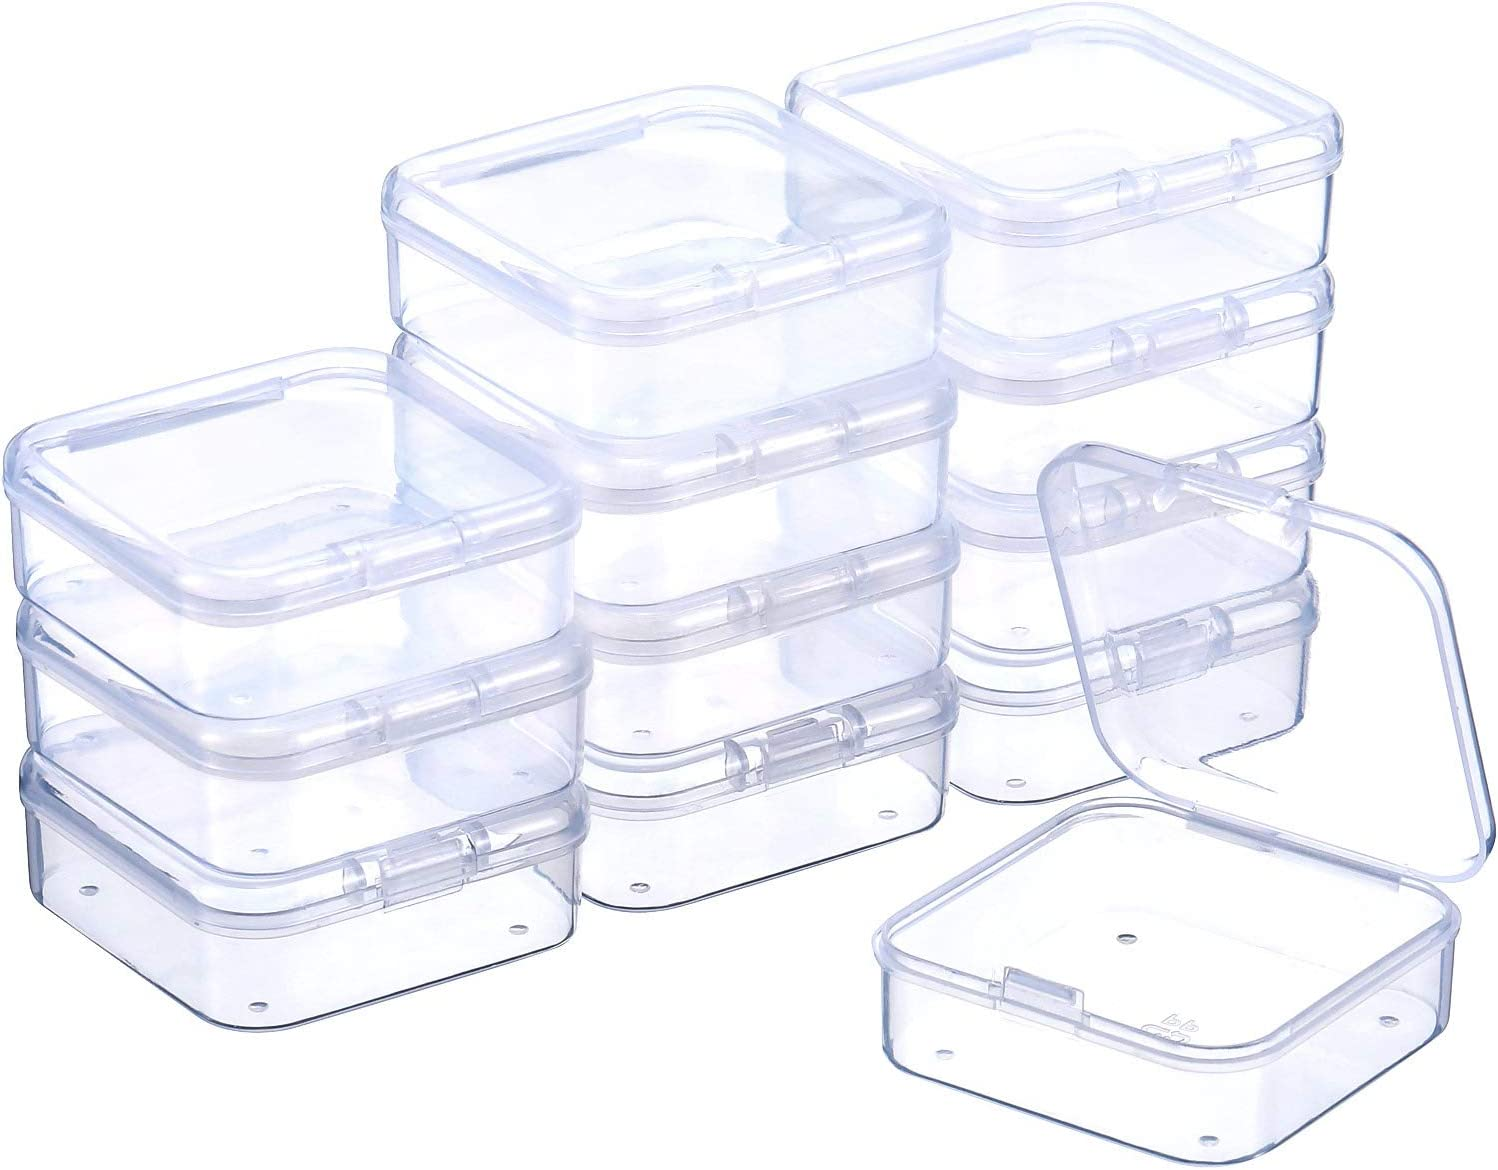 12 Pack Clear Plastic Beads And More Storage Containers Box with Hinged Lid USA